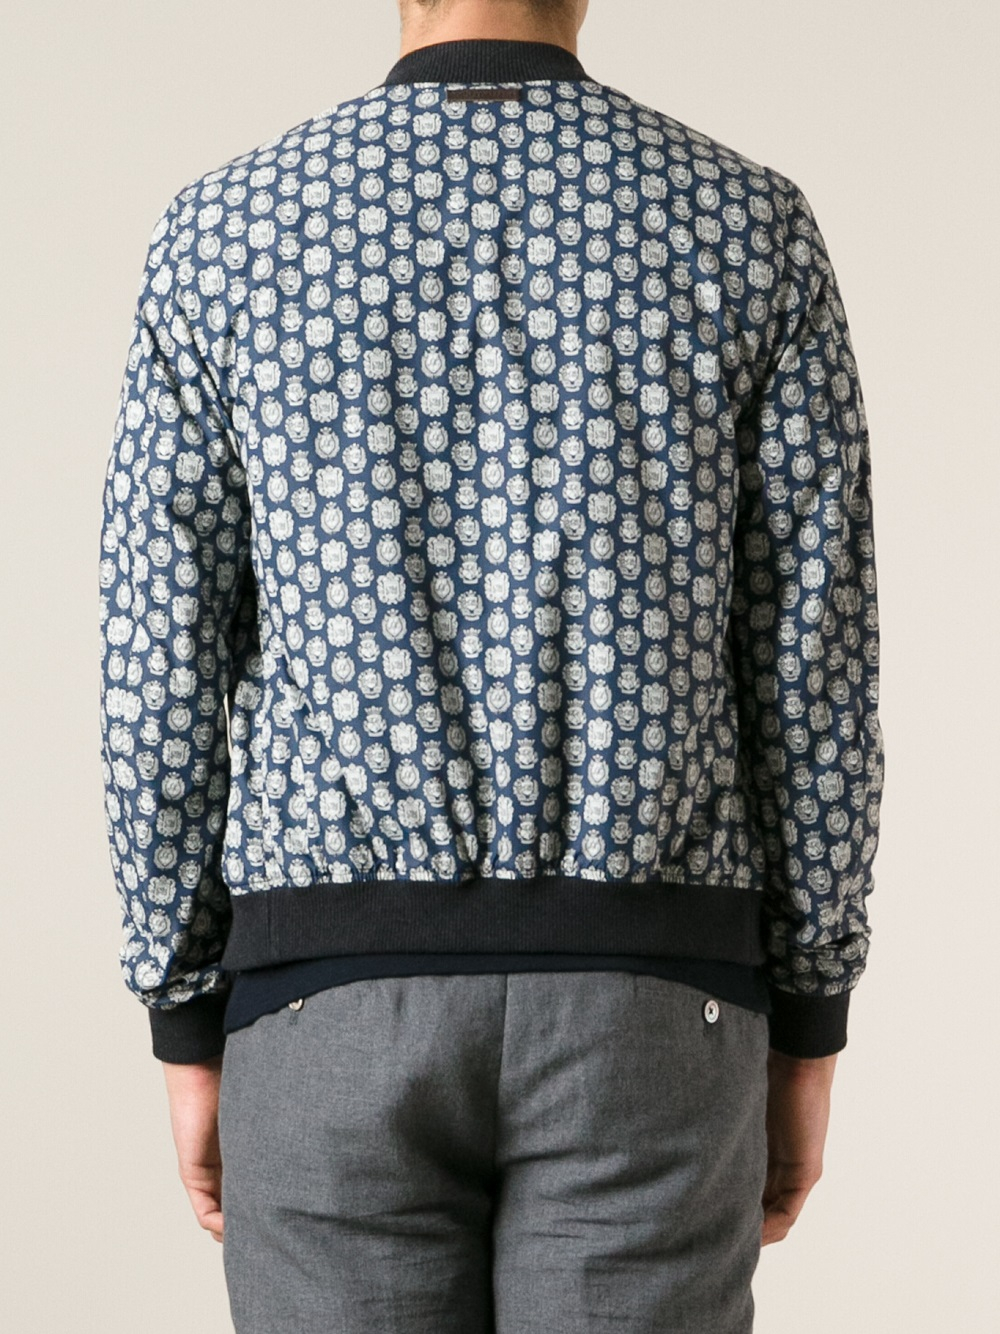 Dolce & Gabbana Crest Print Bomber Jacket in Blue for Men